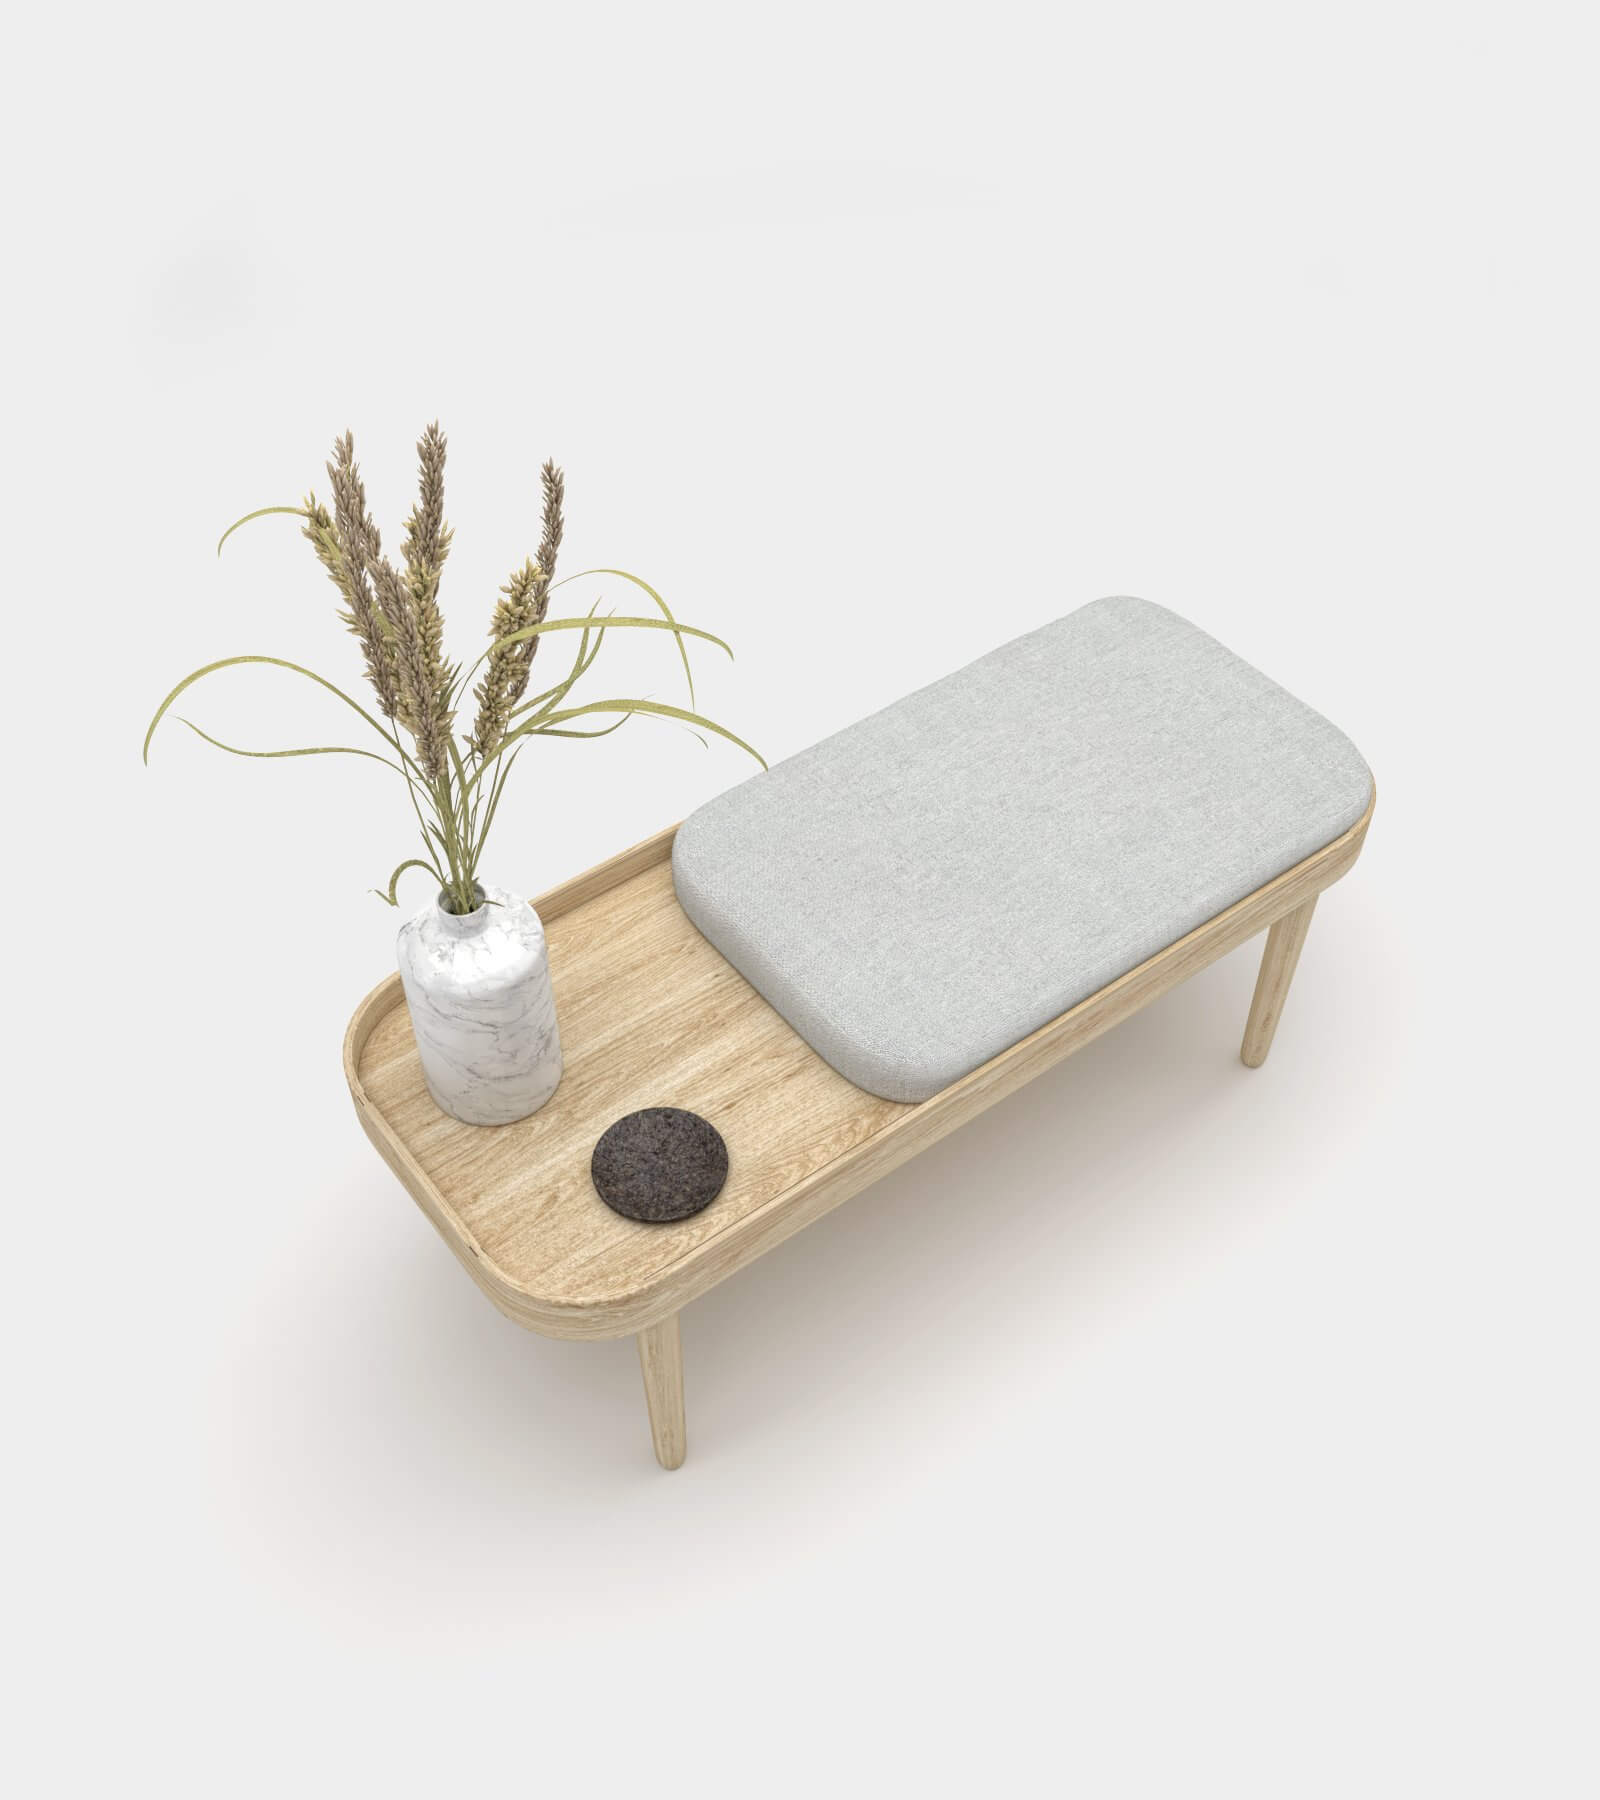 Wooden bench with accessories 3D Model